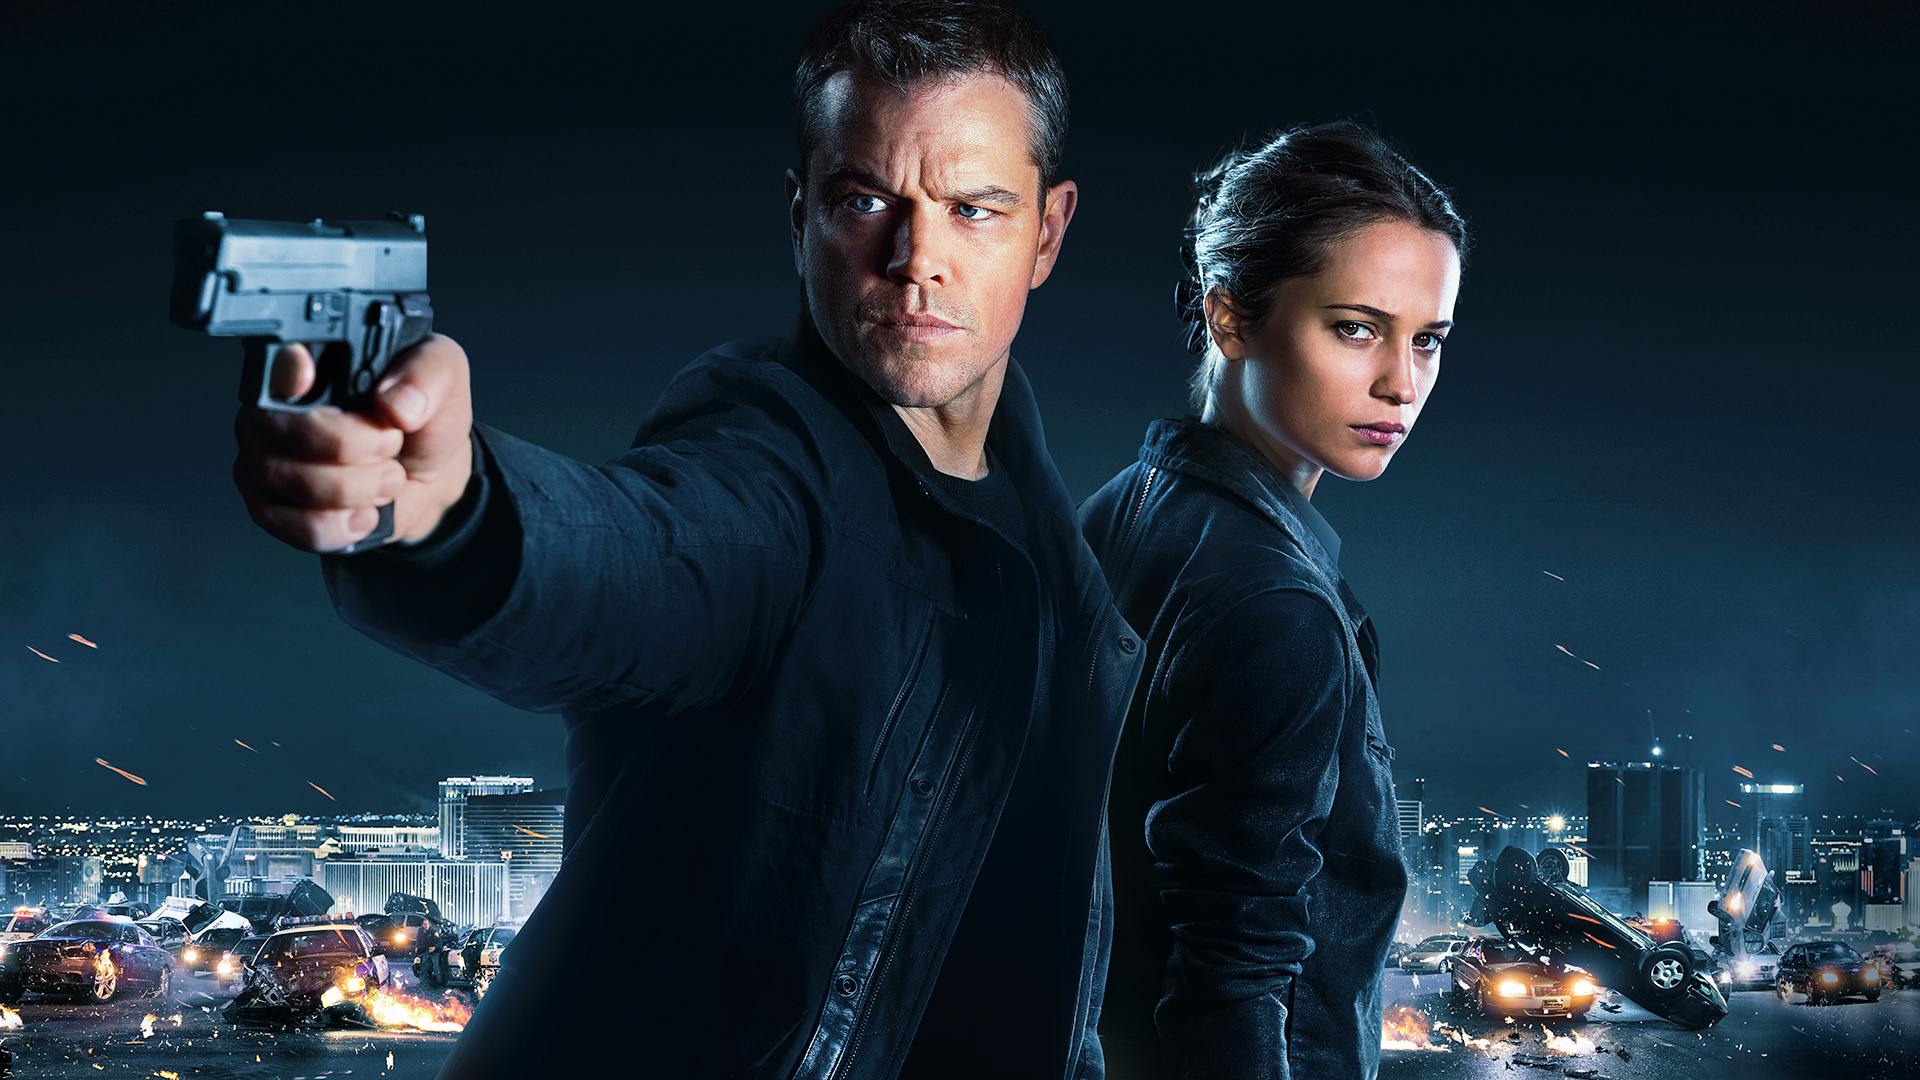 Critique « Jason Bourne » (2016) : Le Come-Back dans la peau.